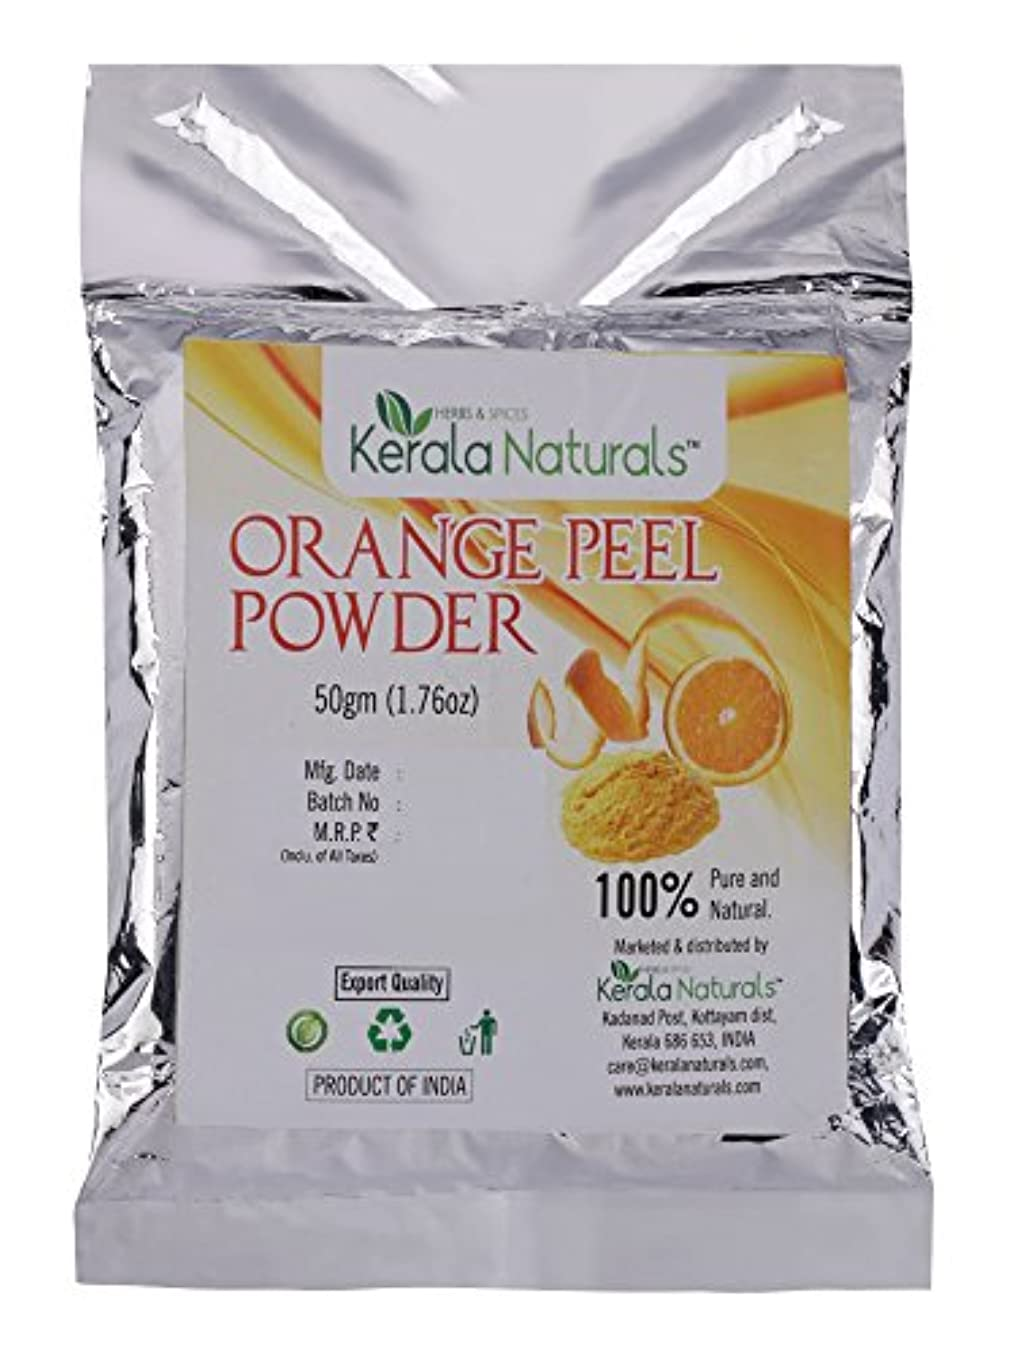 Orange Peel Powder 150gm - Natural Pore Cleanser - Helps to eliminate blackheads, blemishes and scars with its...